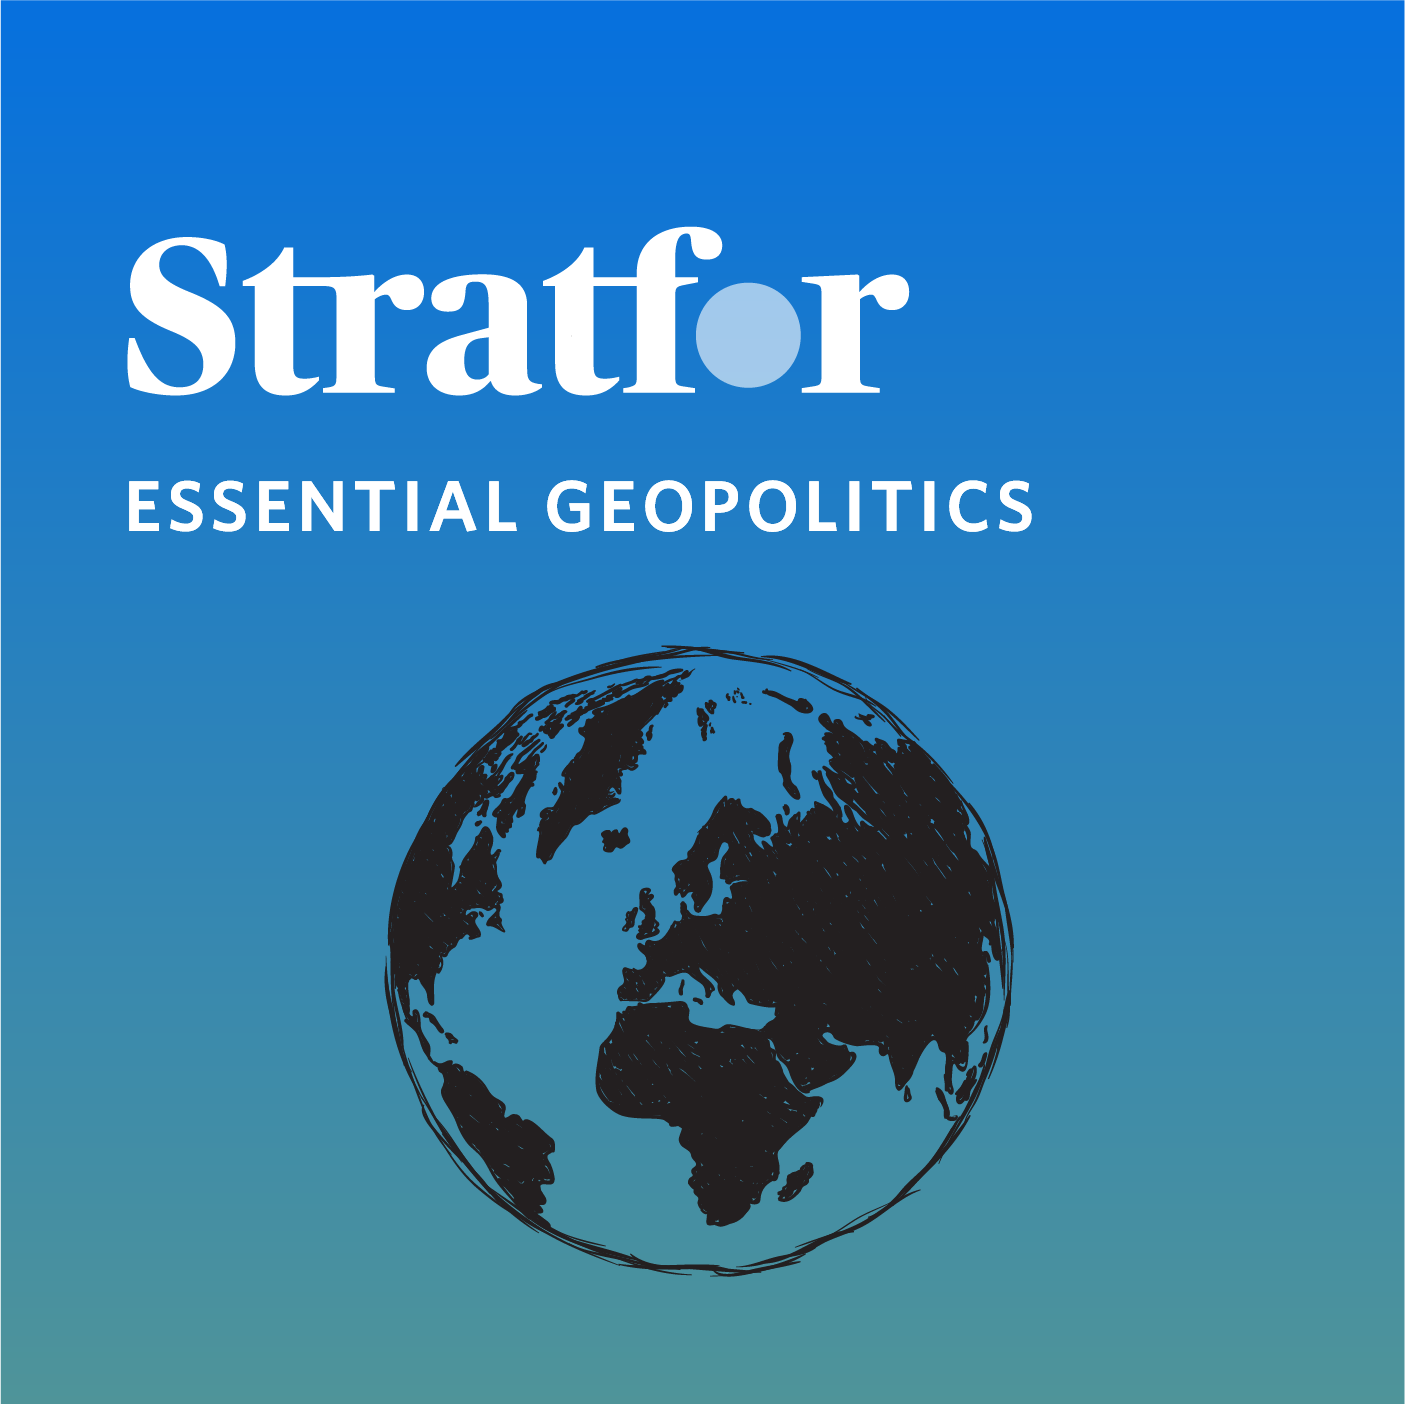 Essential Geopolitics: What's Behind the New the New START Treaty?